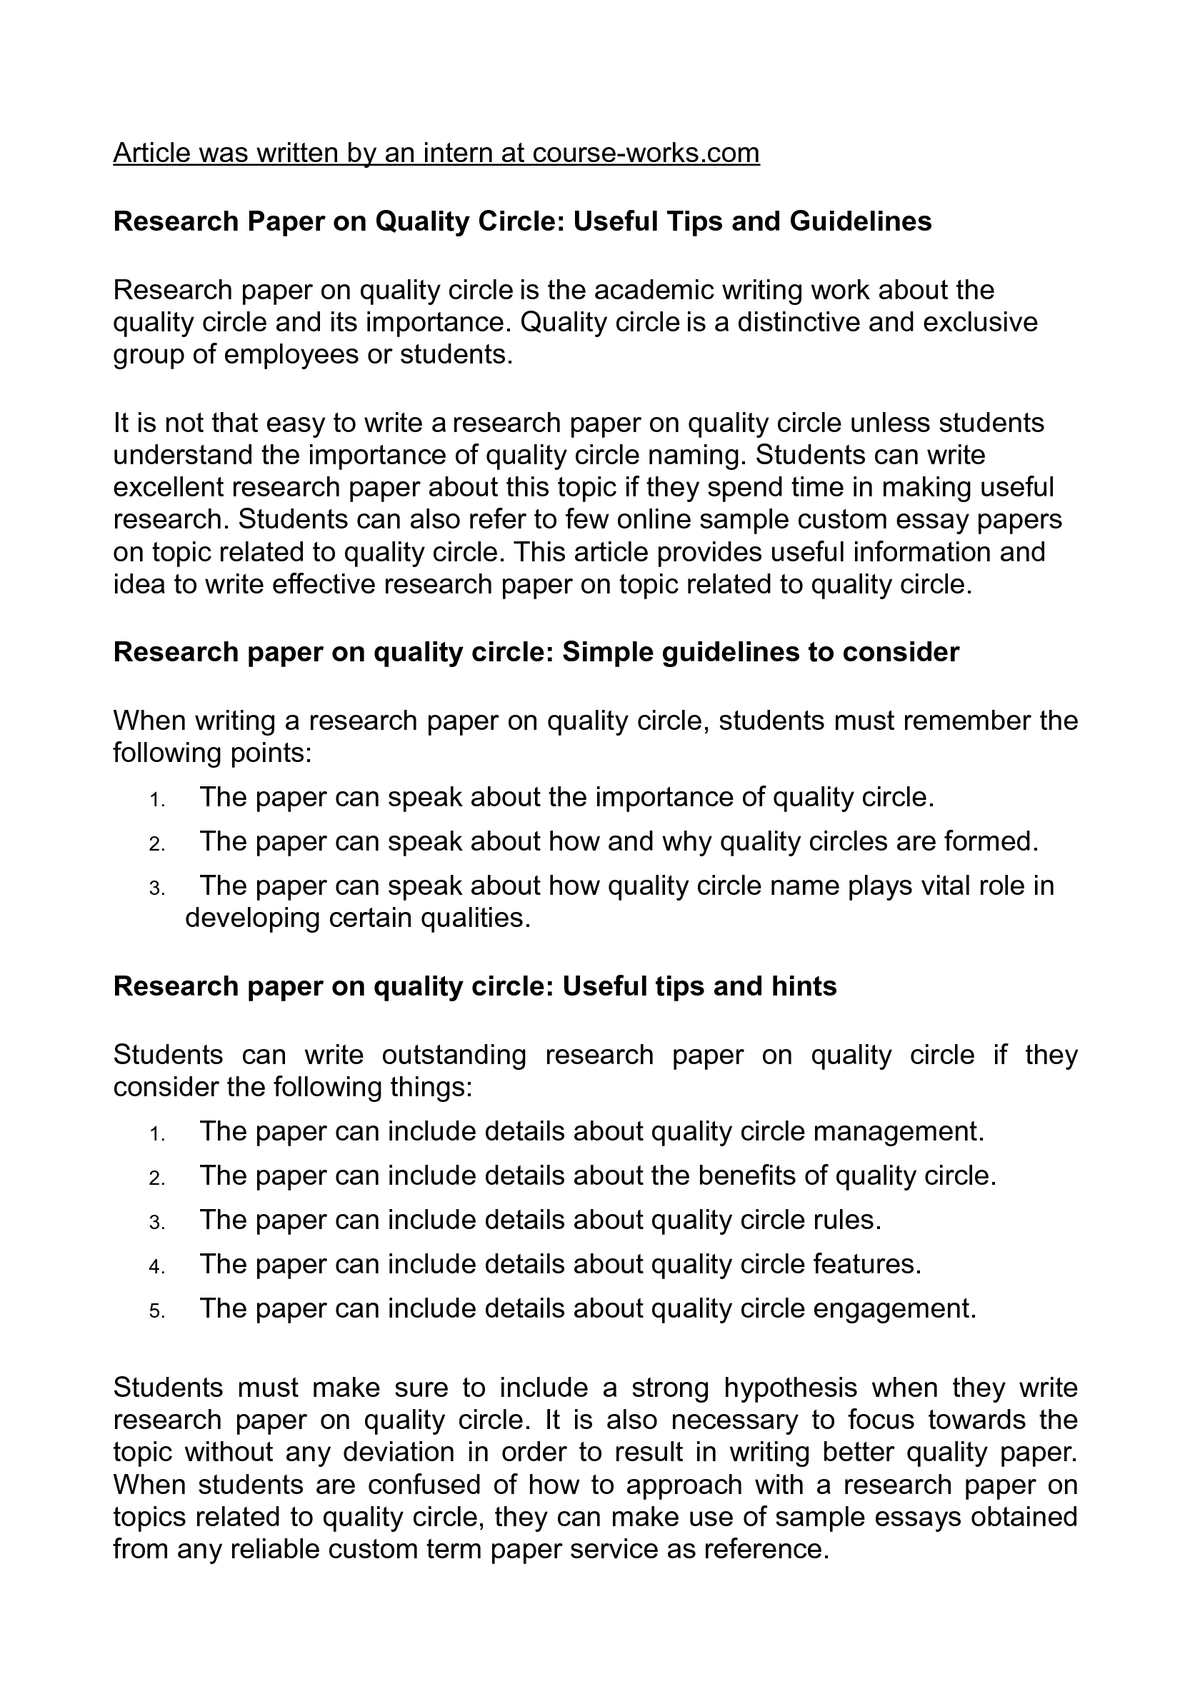 007 P1 Topics To Write Research Paper Beautiful On A Persuasive Essay Your Economics Full